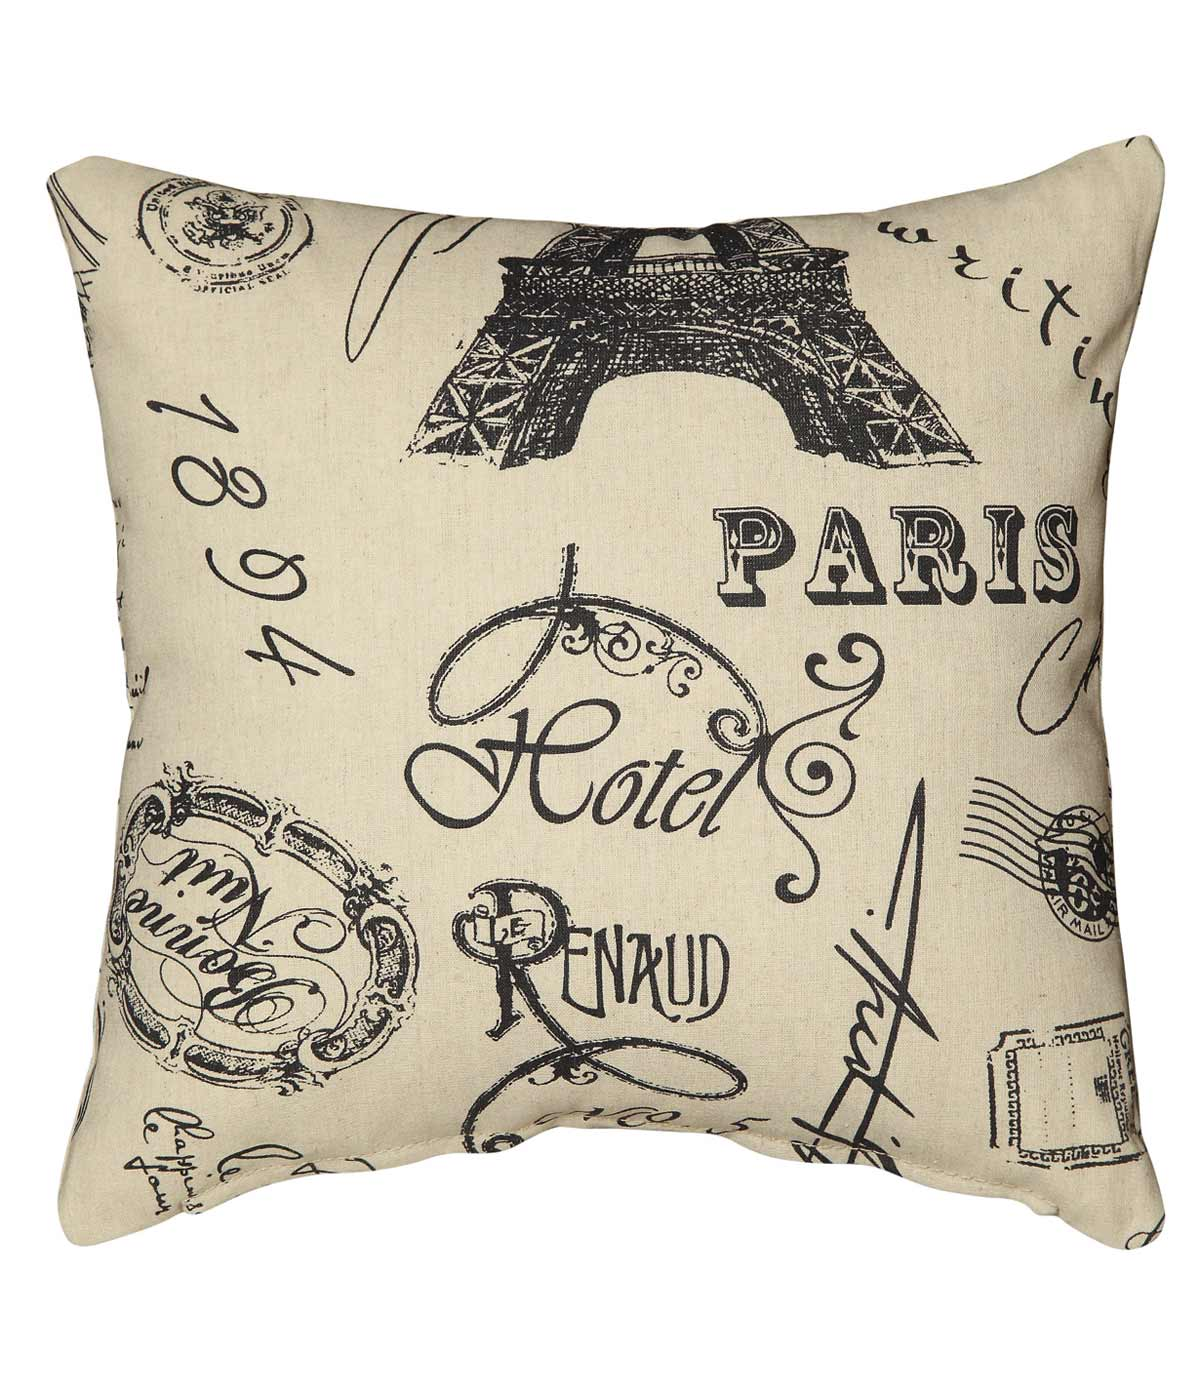 905087 Paris Pillow